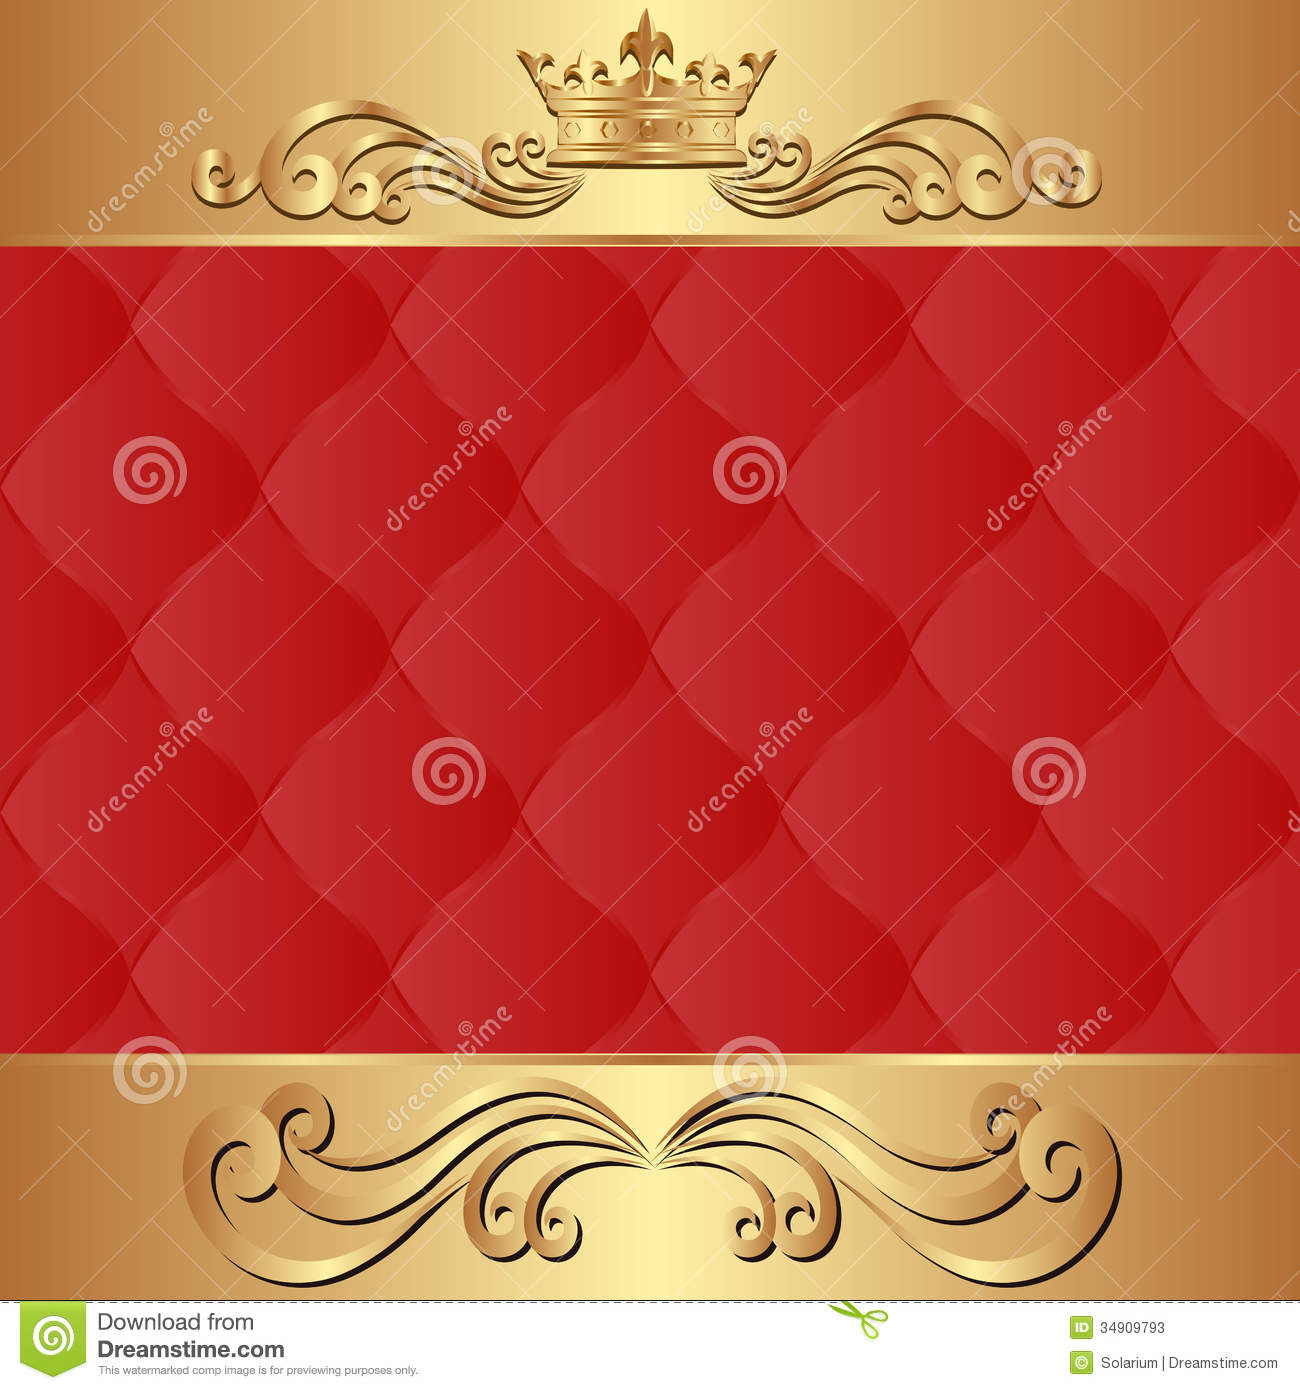 Gold crown background - photo#12